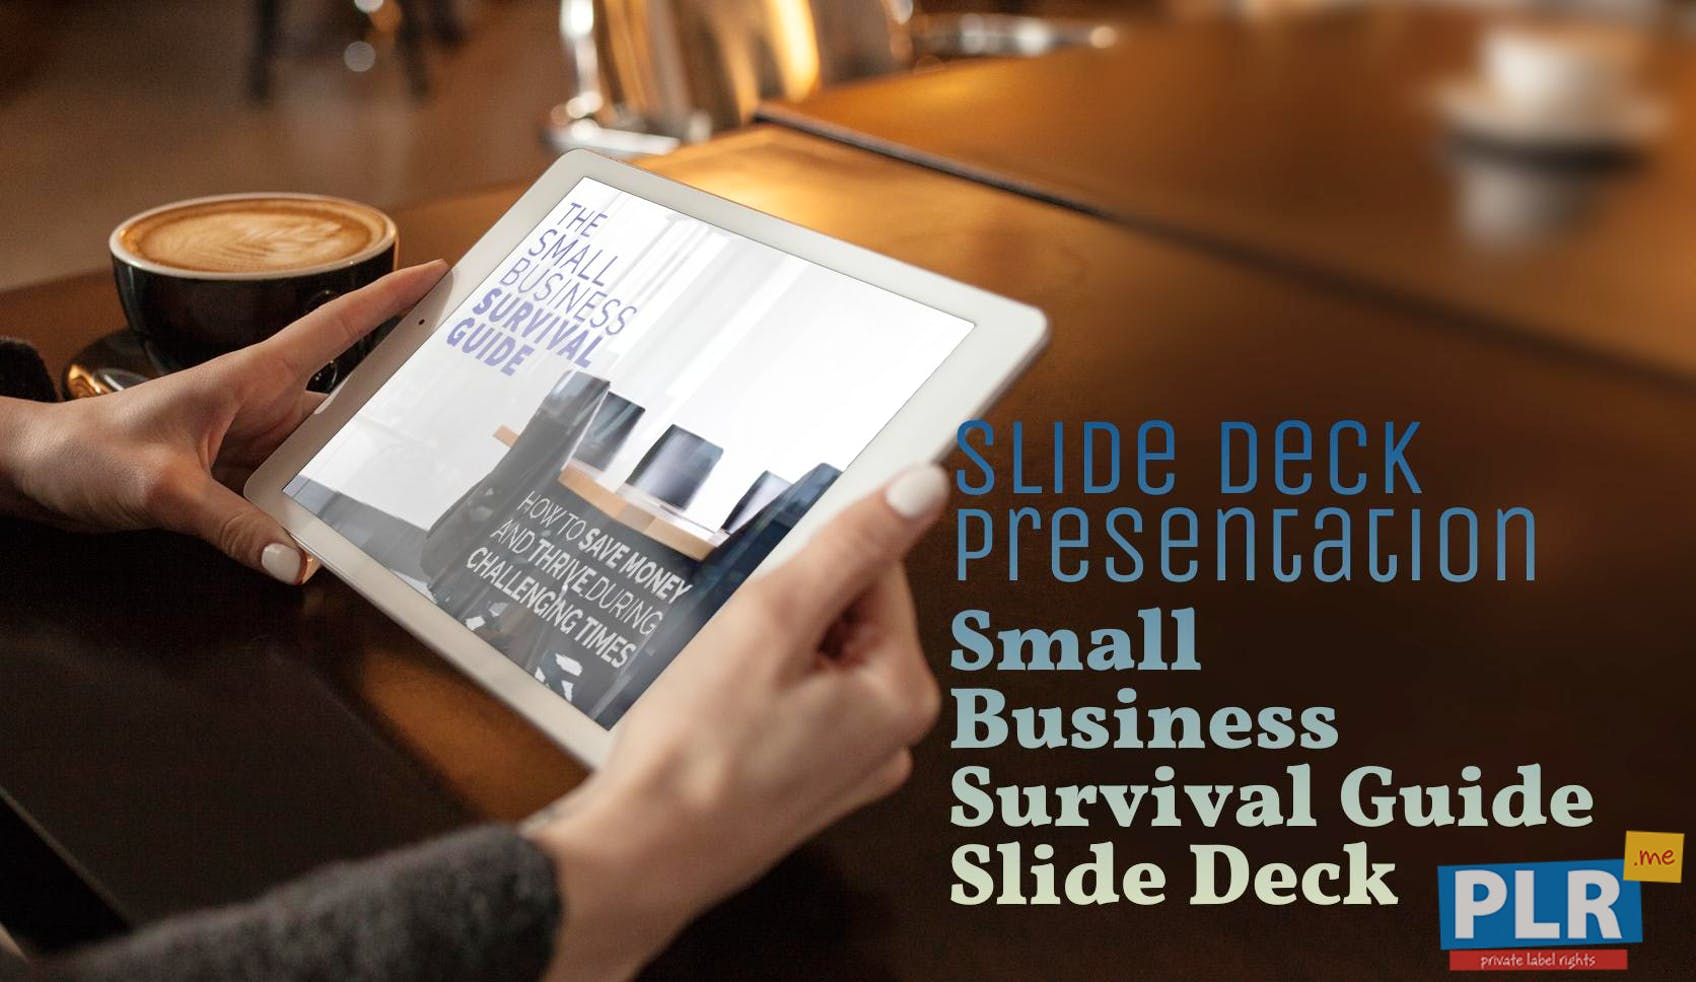 Small Business Survival Guide Slide Deck